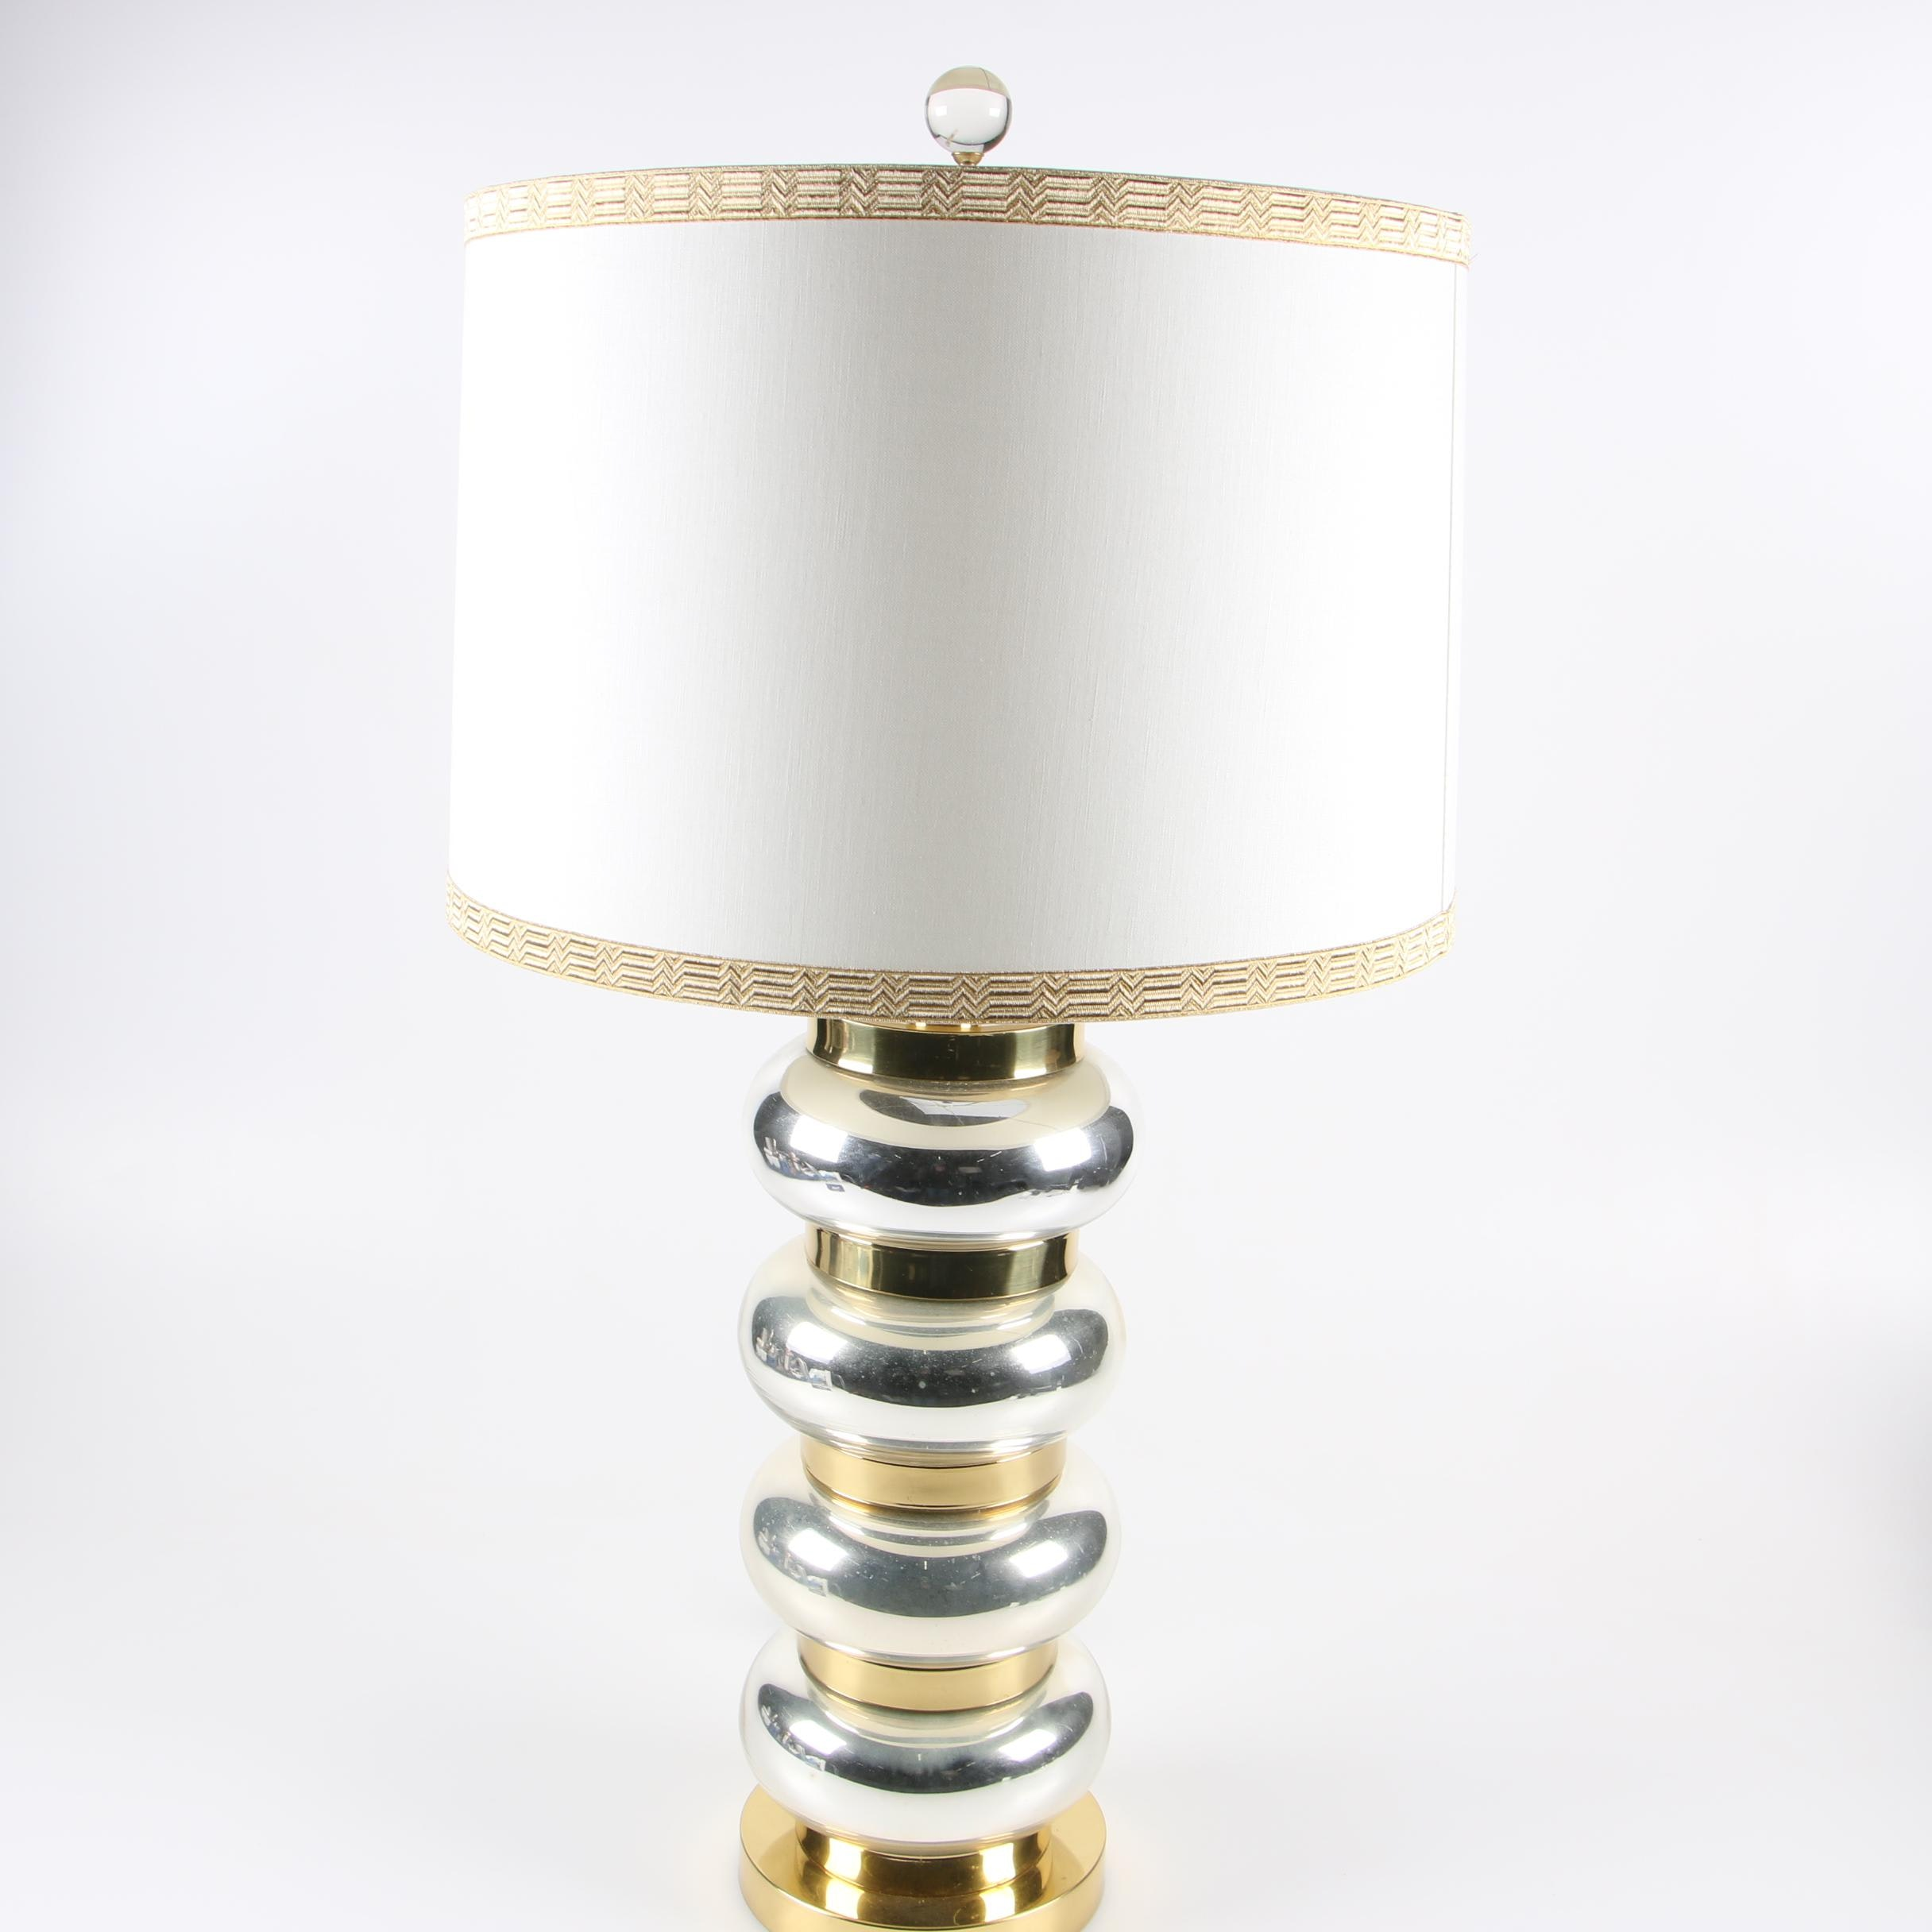 Paul Hanson Gold and Silver Glass Stacked Orb Table Lamp, Late 20th Century